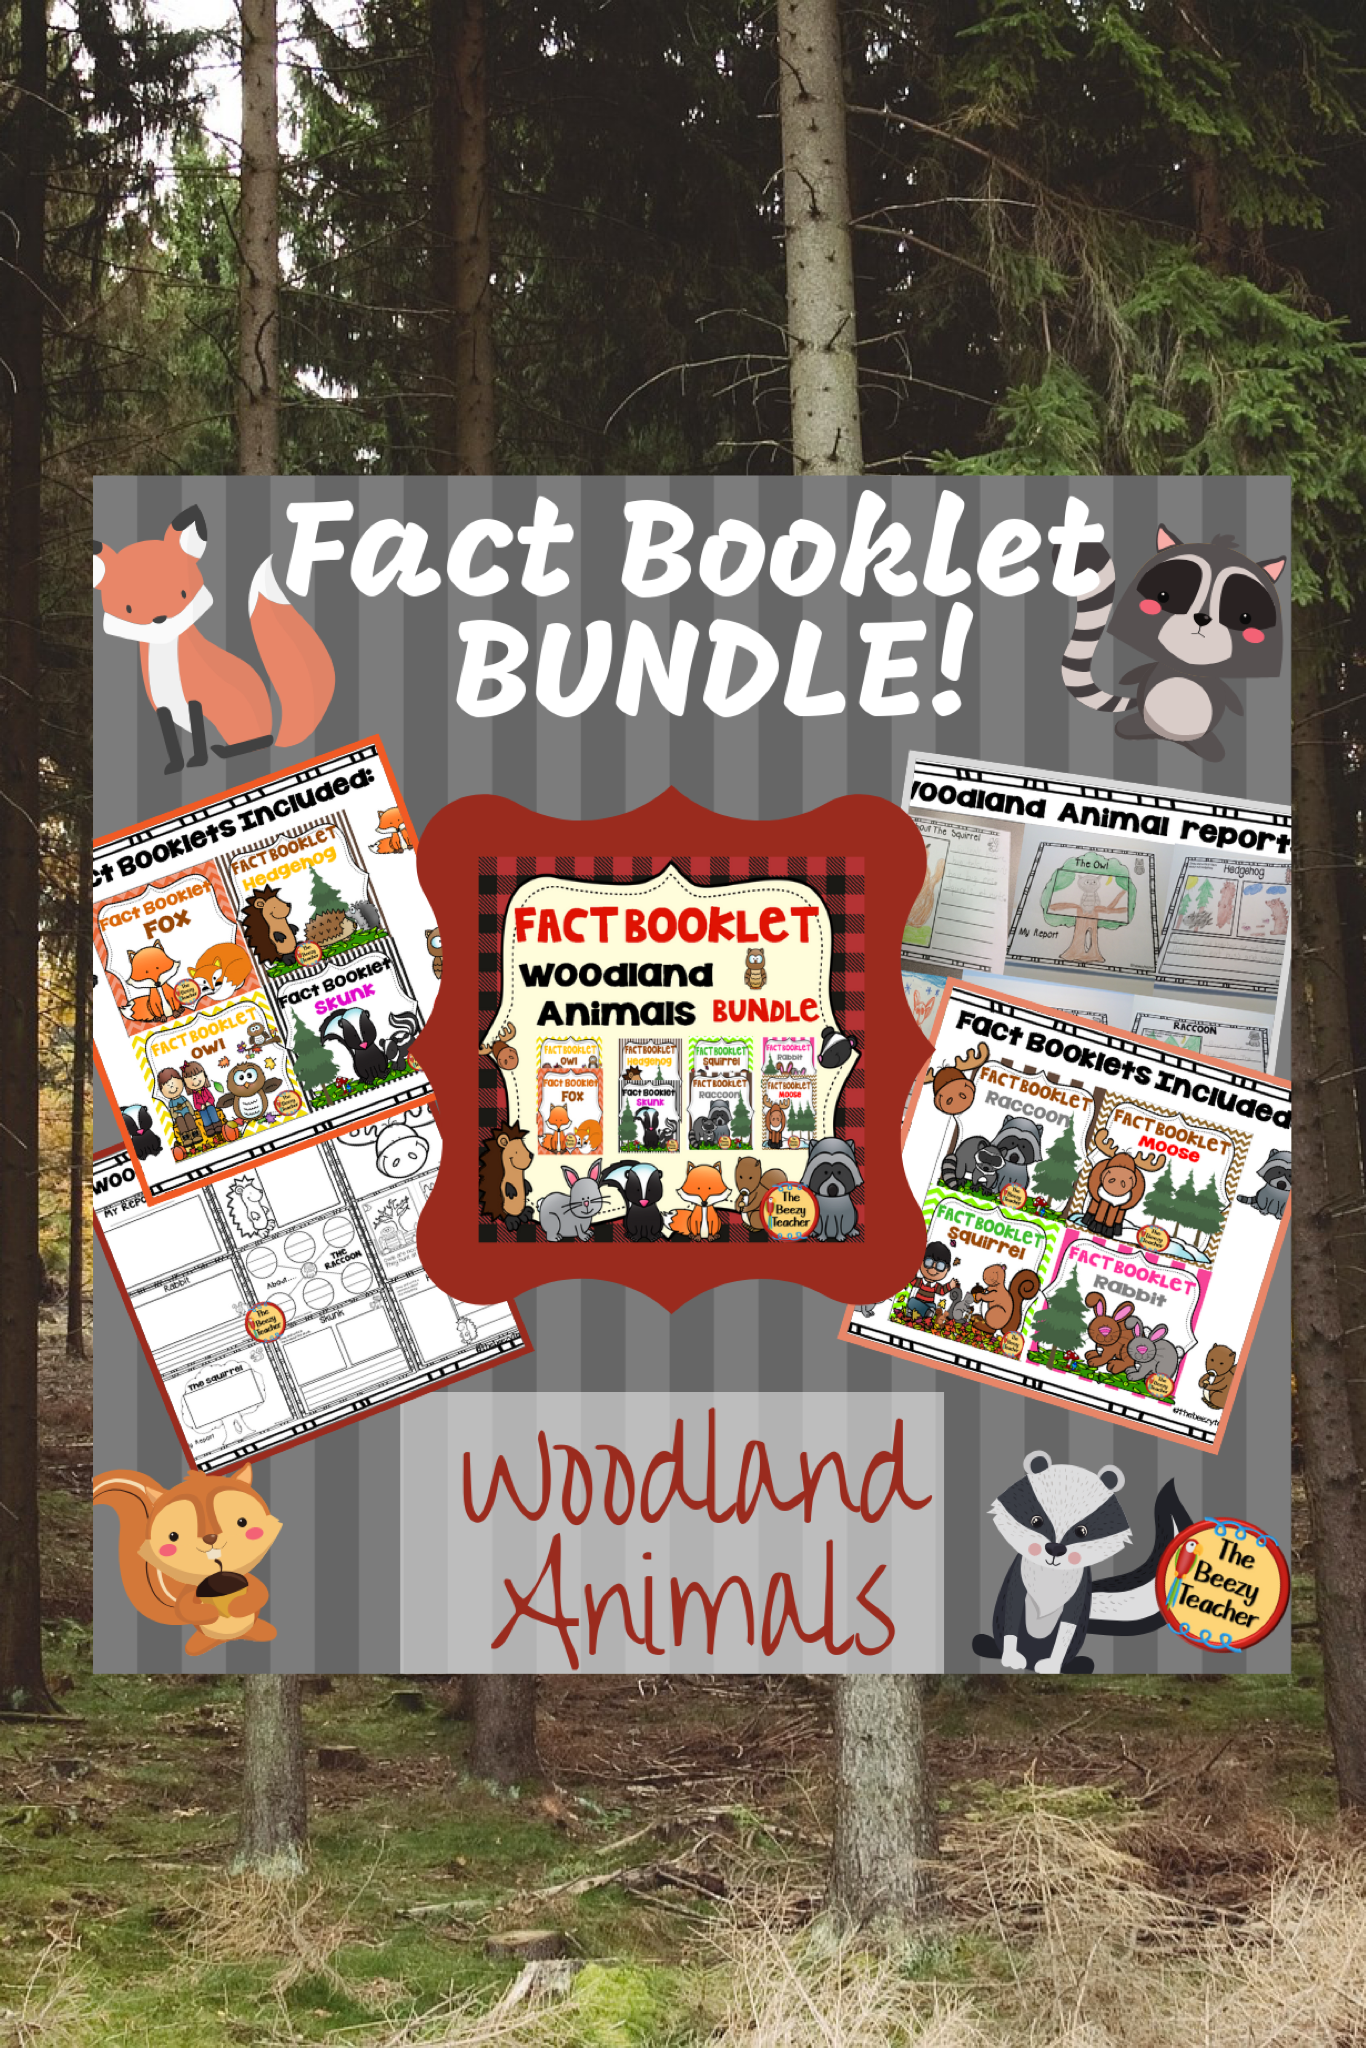 Woodland Animals Fact Booklet Bundle